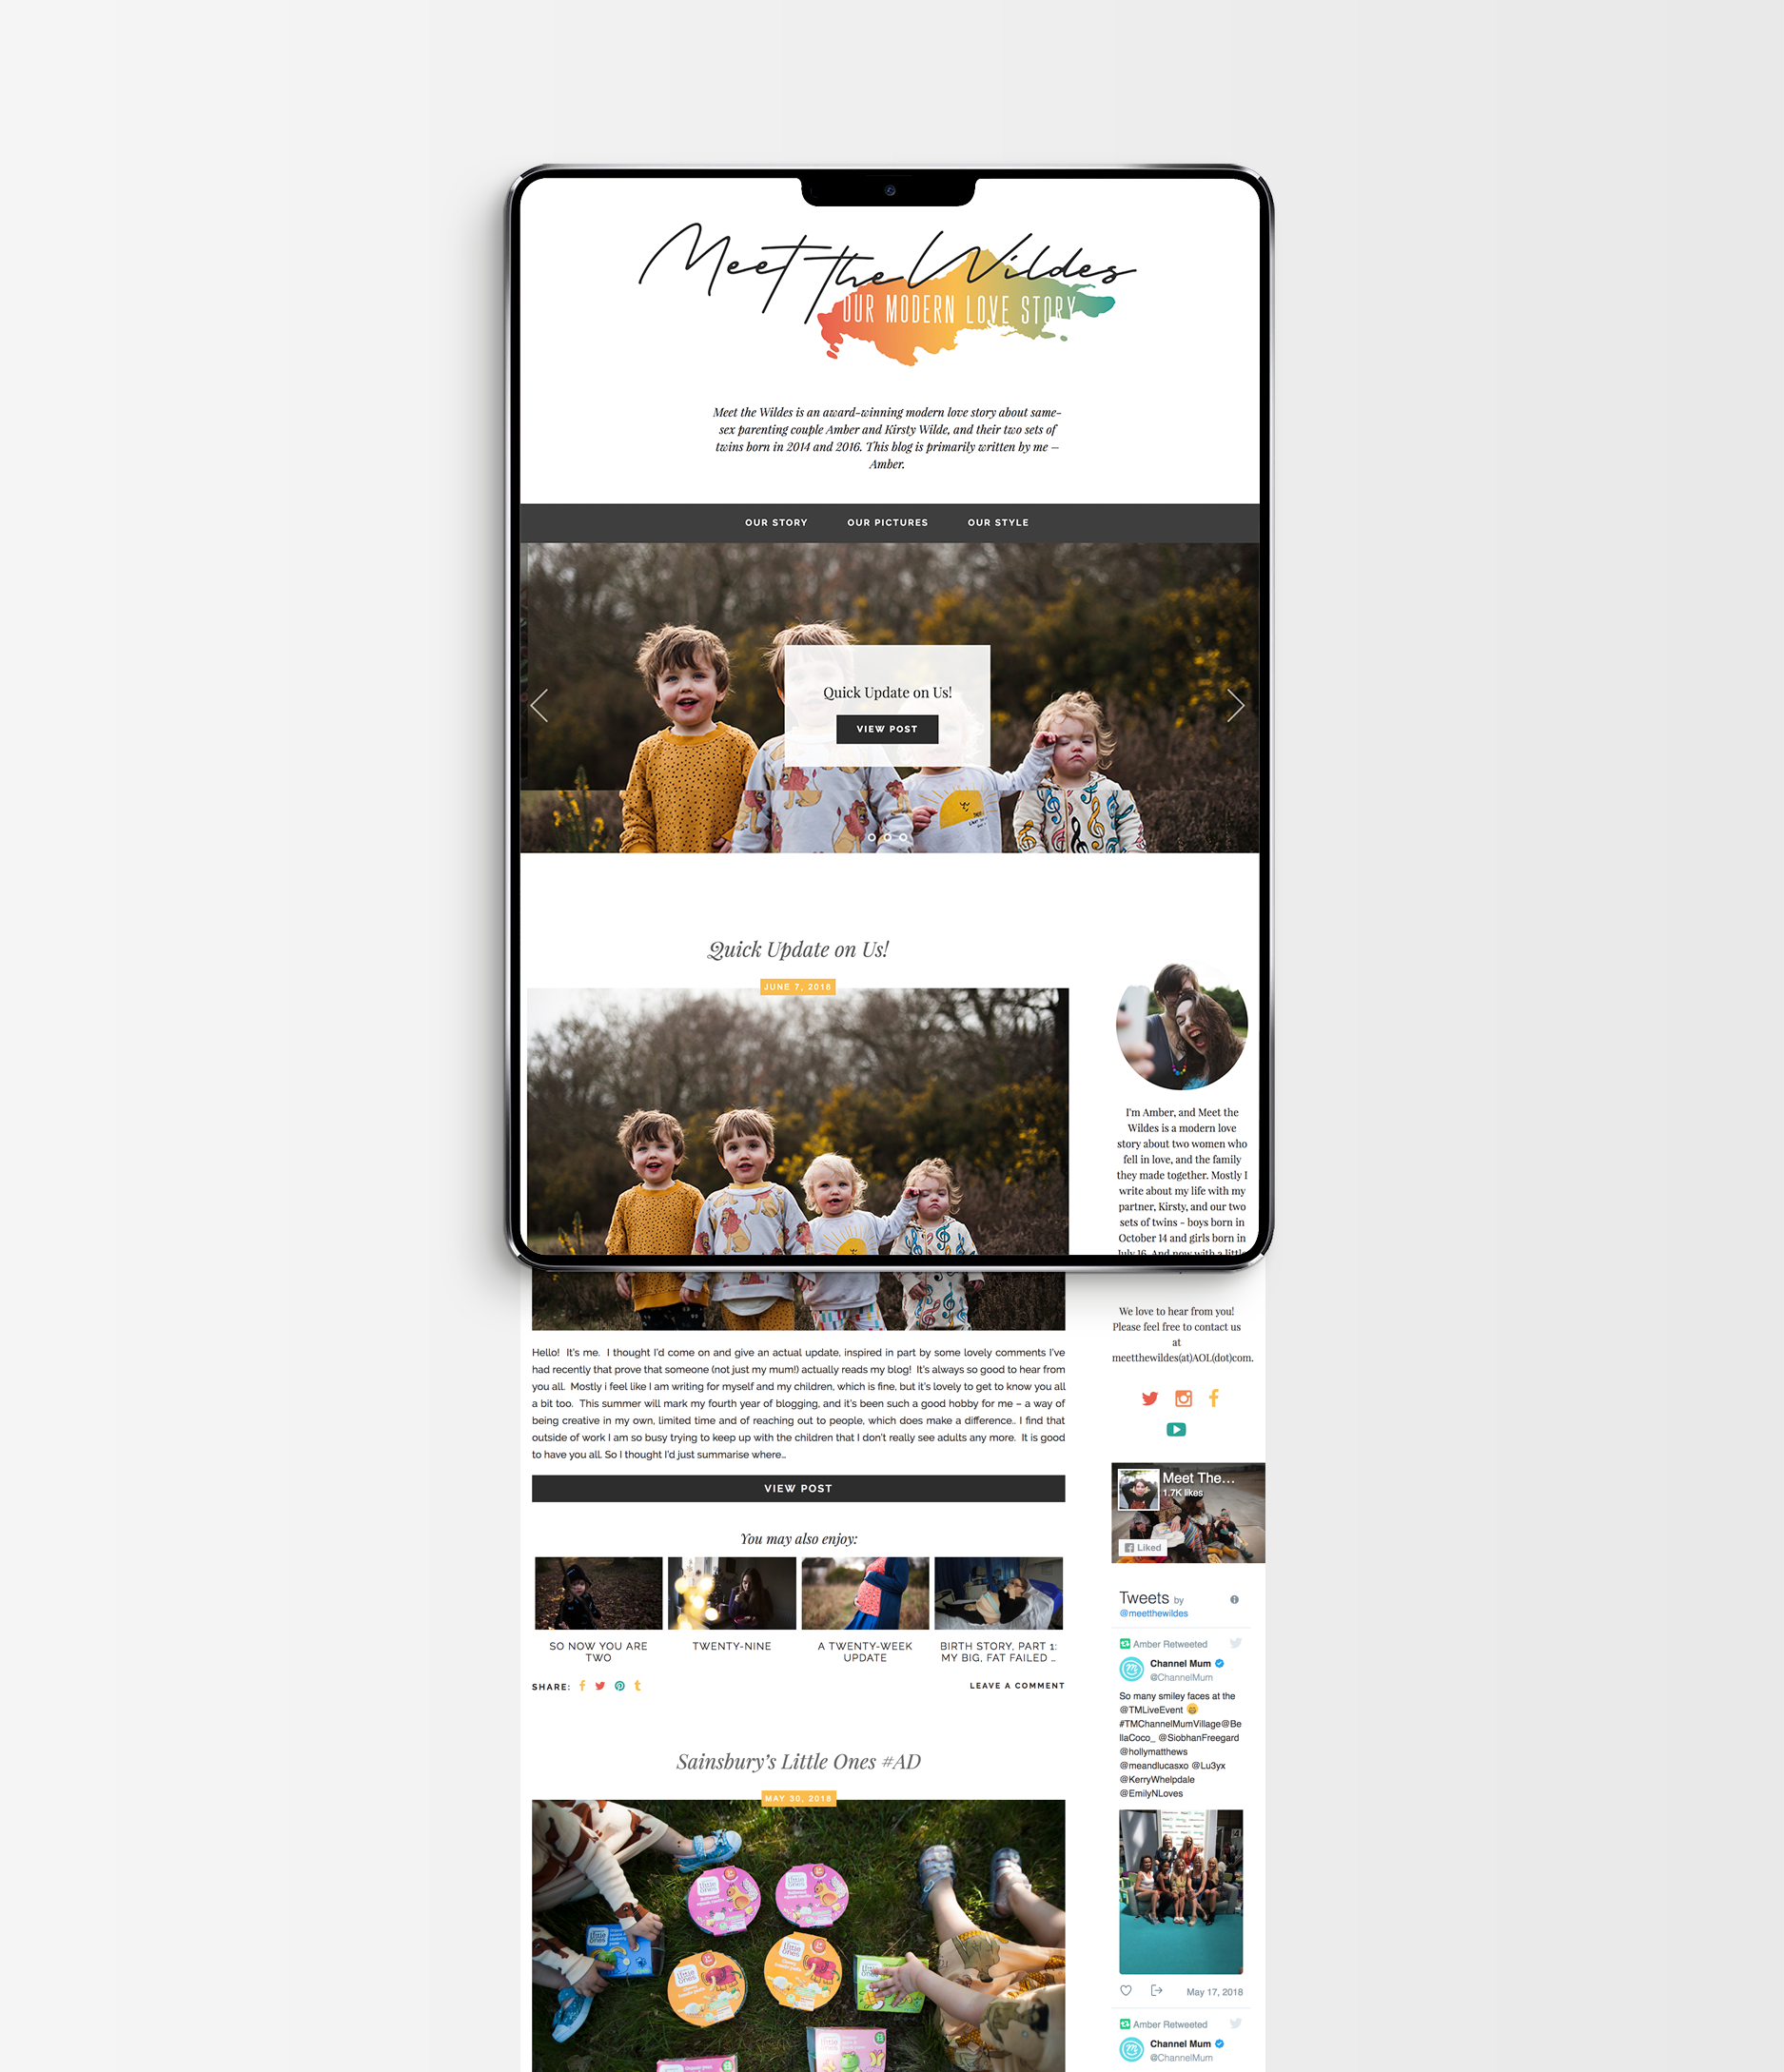 Theme implementation of new branding/header design for Meet the Wildes, family & lifestyle blog - Designs by Kaye Huett, Wiltshire-based graphic designer